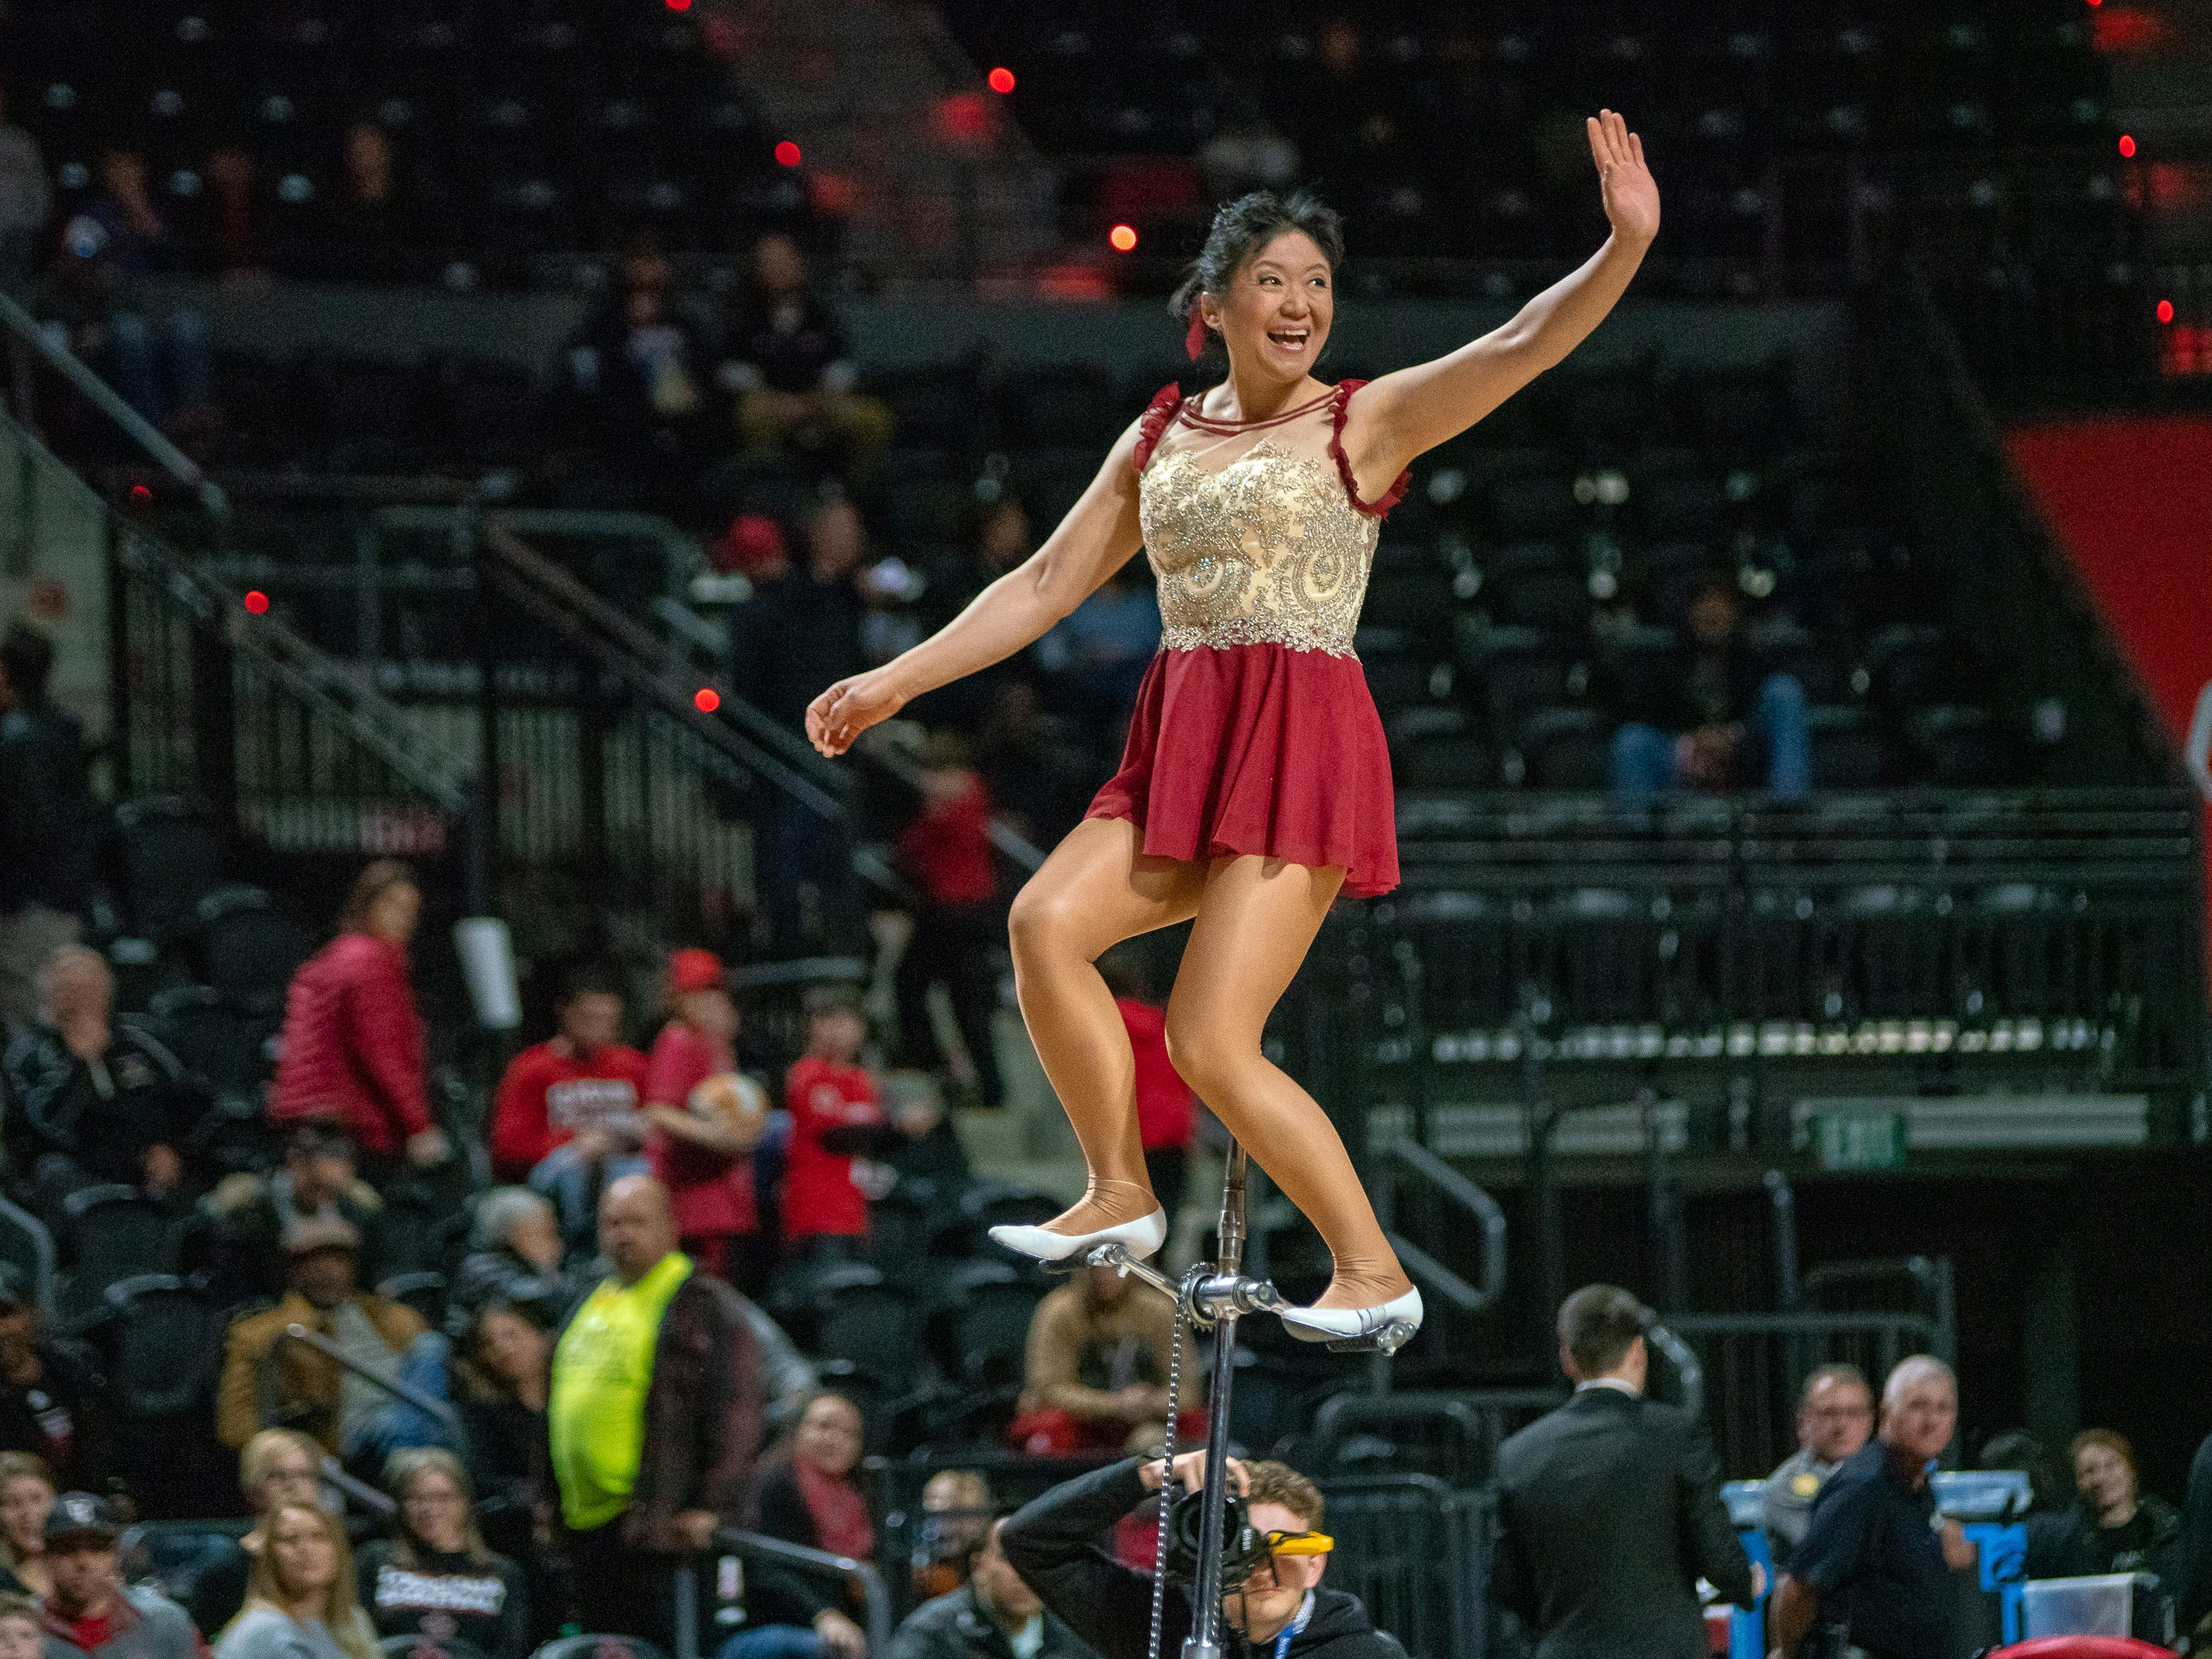 Red Panda waves to the crowd before her halftime performance as the Ragin' Cajuns take on the Georgia State Panthers at the Cajundome on Feb. 8, 2019.